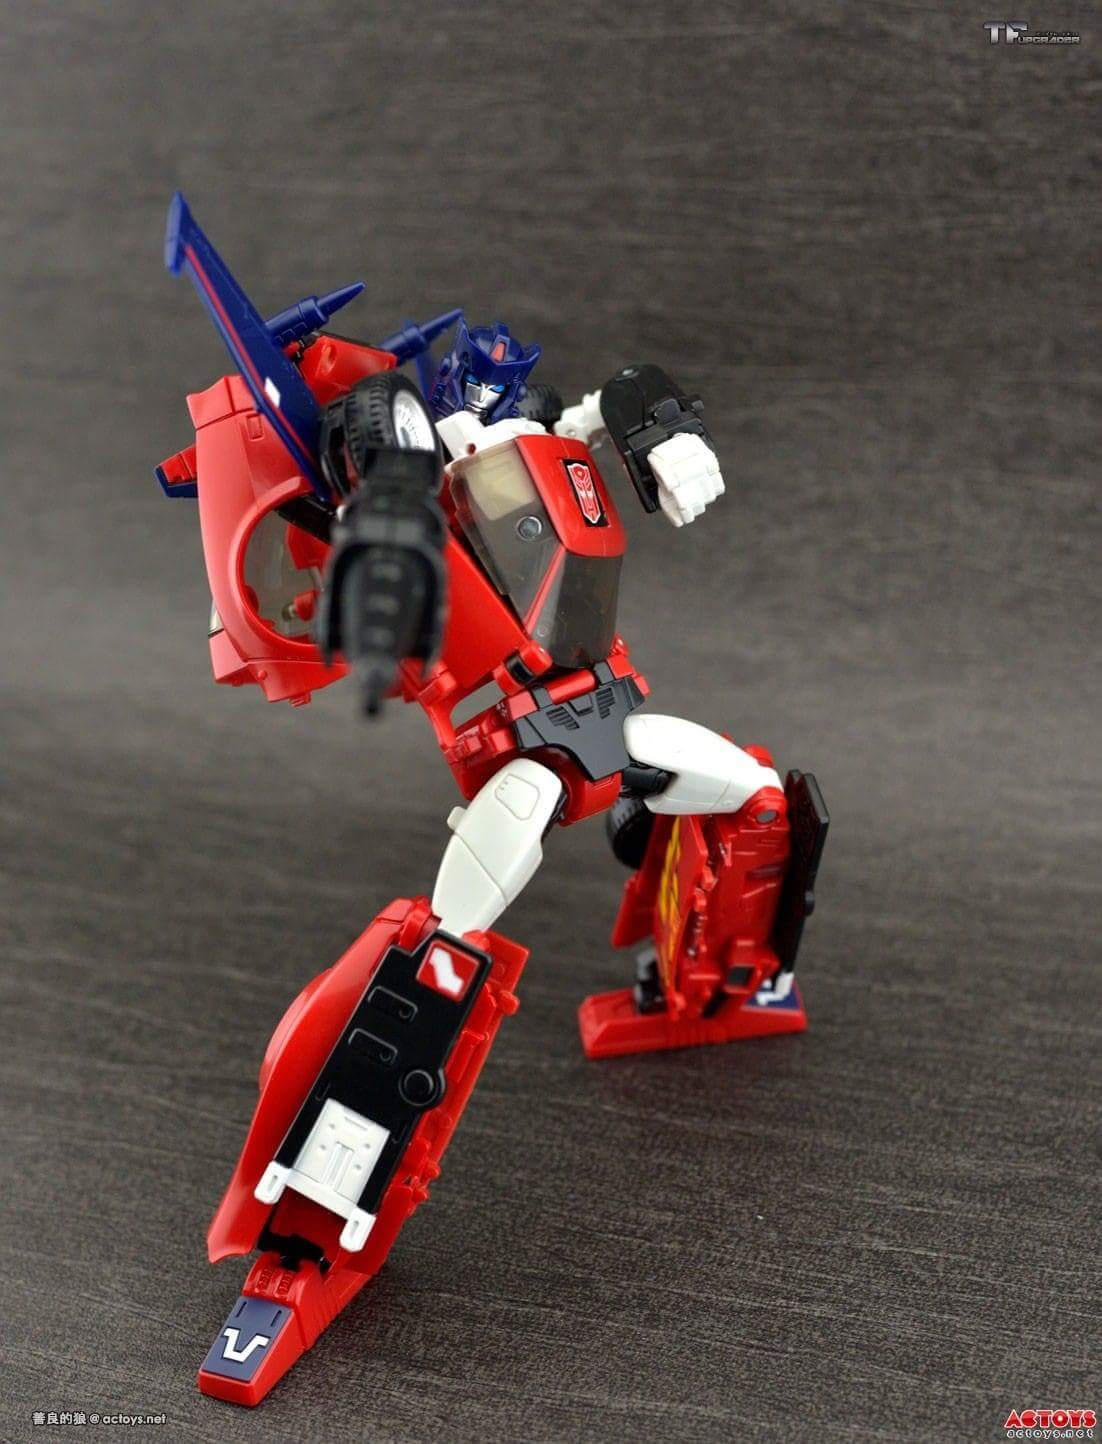 [Masterpiece] MP-25L LoudPedal (Rouge) + MP-26 Road Rage (Noir) ― aka Tracks/Le Sillage Diaclone - Page 2 Py4YnAsH